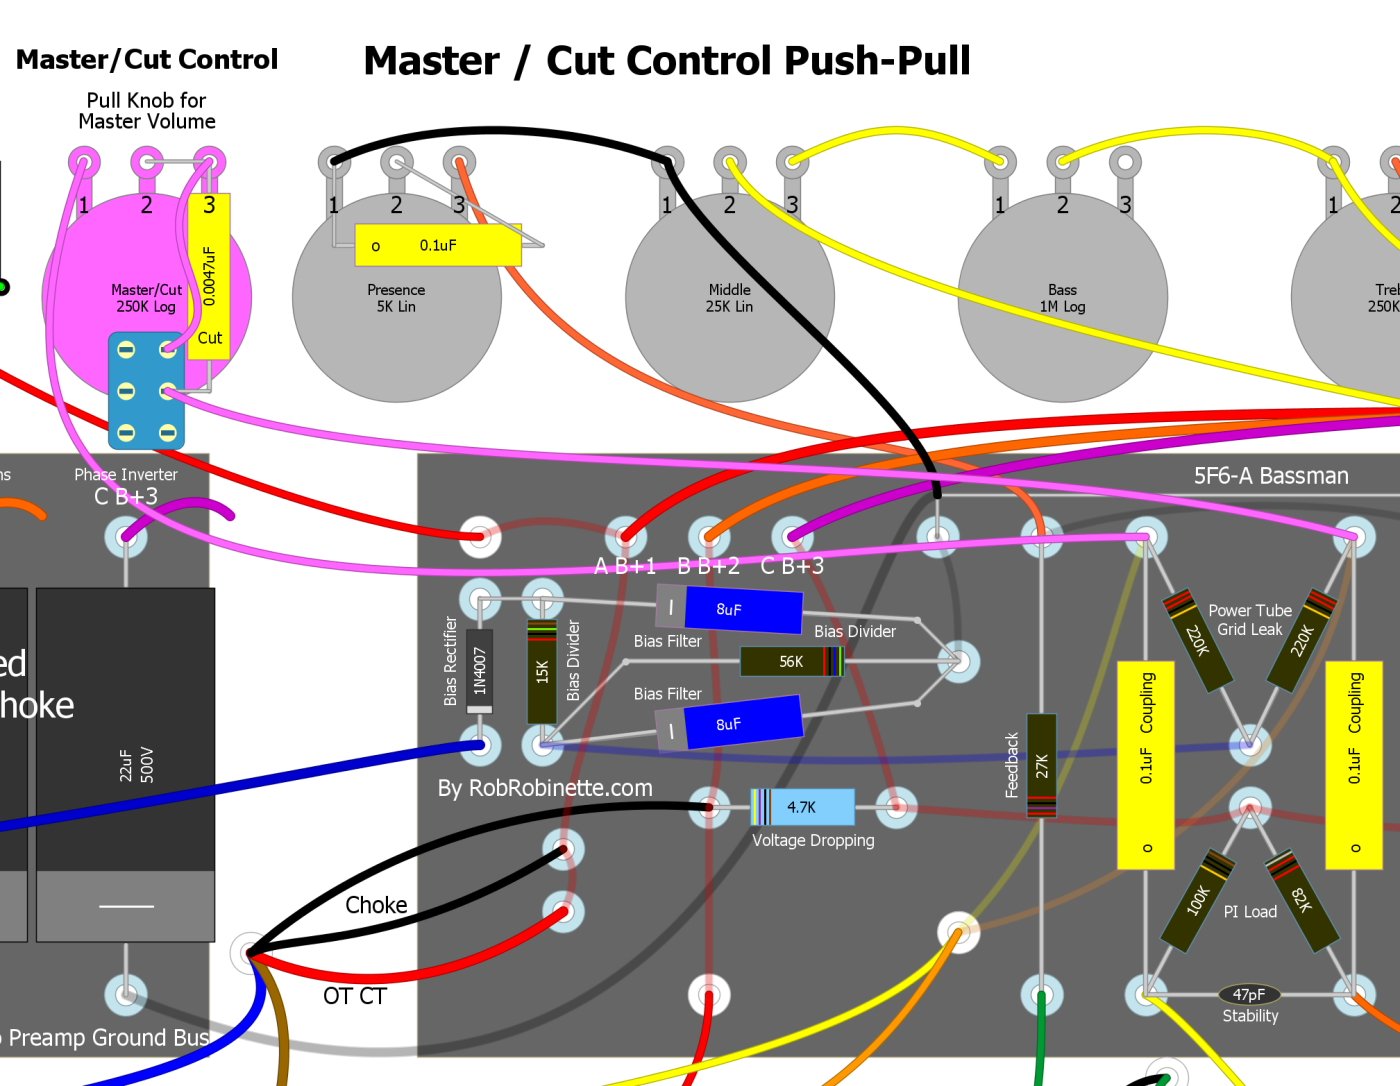 Amp Voicing Low Pass Filter And Audio Amplifier Circuit Diagram Super You Can Turn A Cut Control Into Trainwreck Type 3 Master Volume By Simply Jumpering Around The Cap I Use Push Pull 250k Log Pot To Select